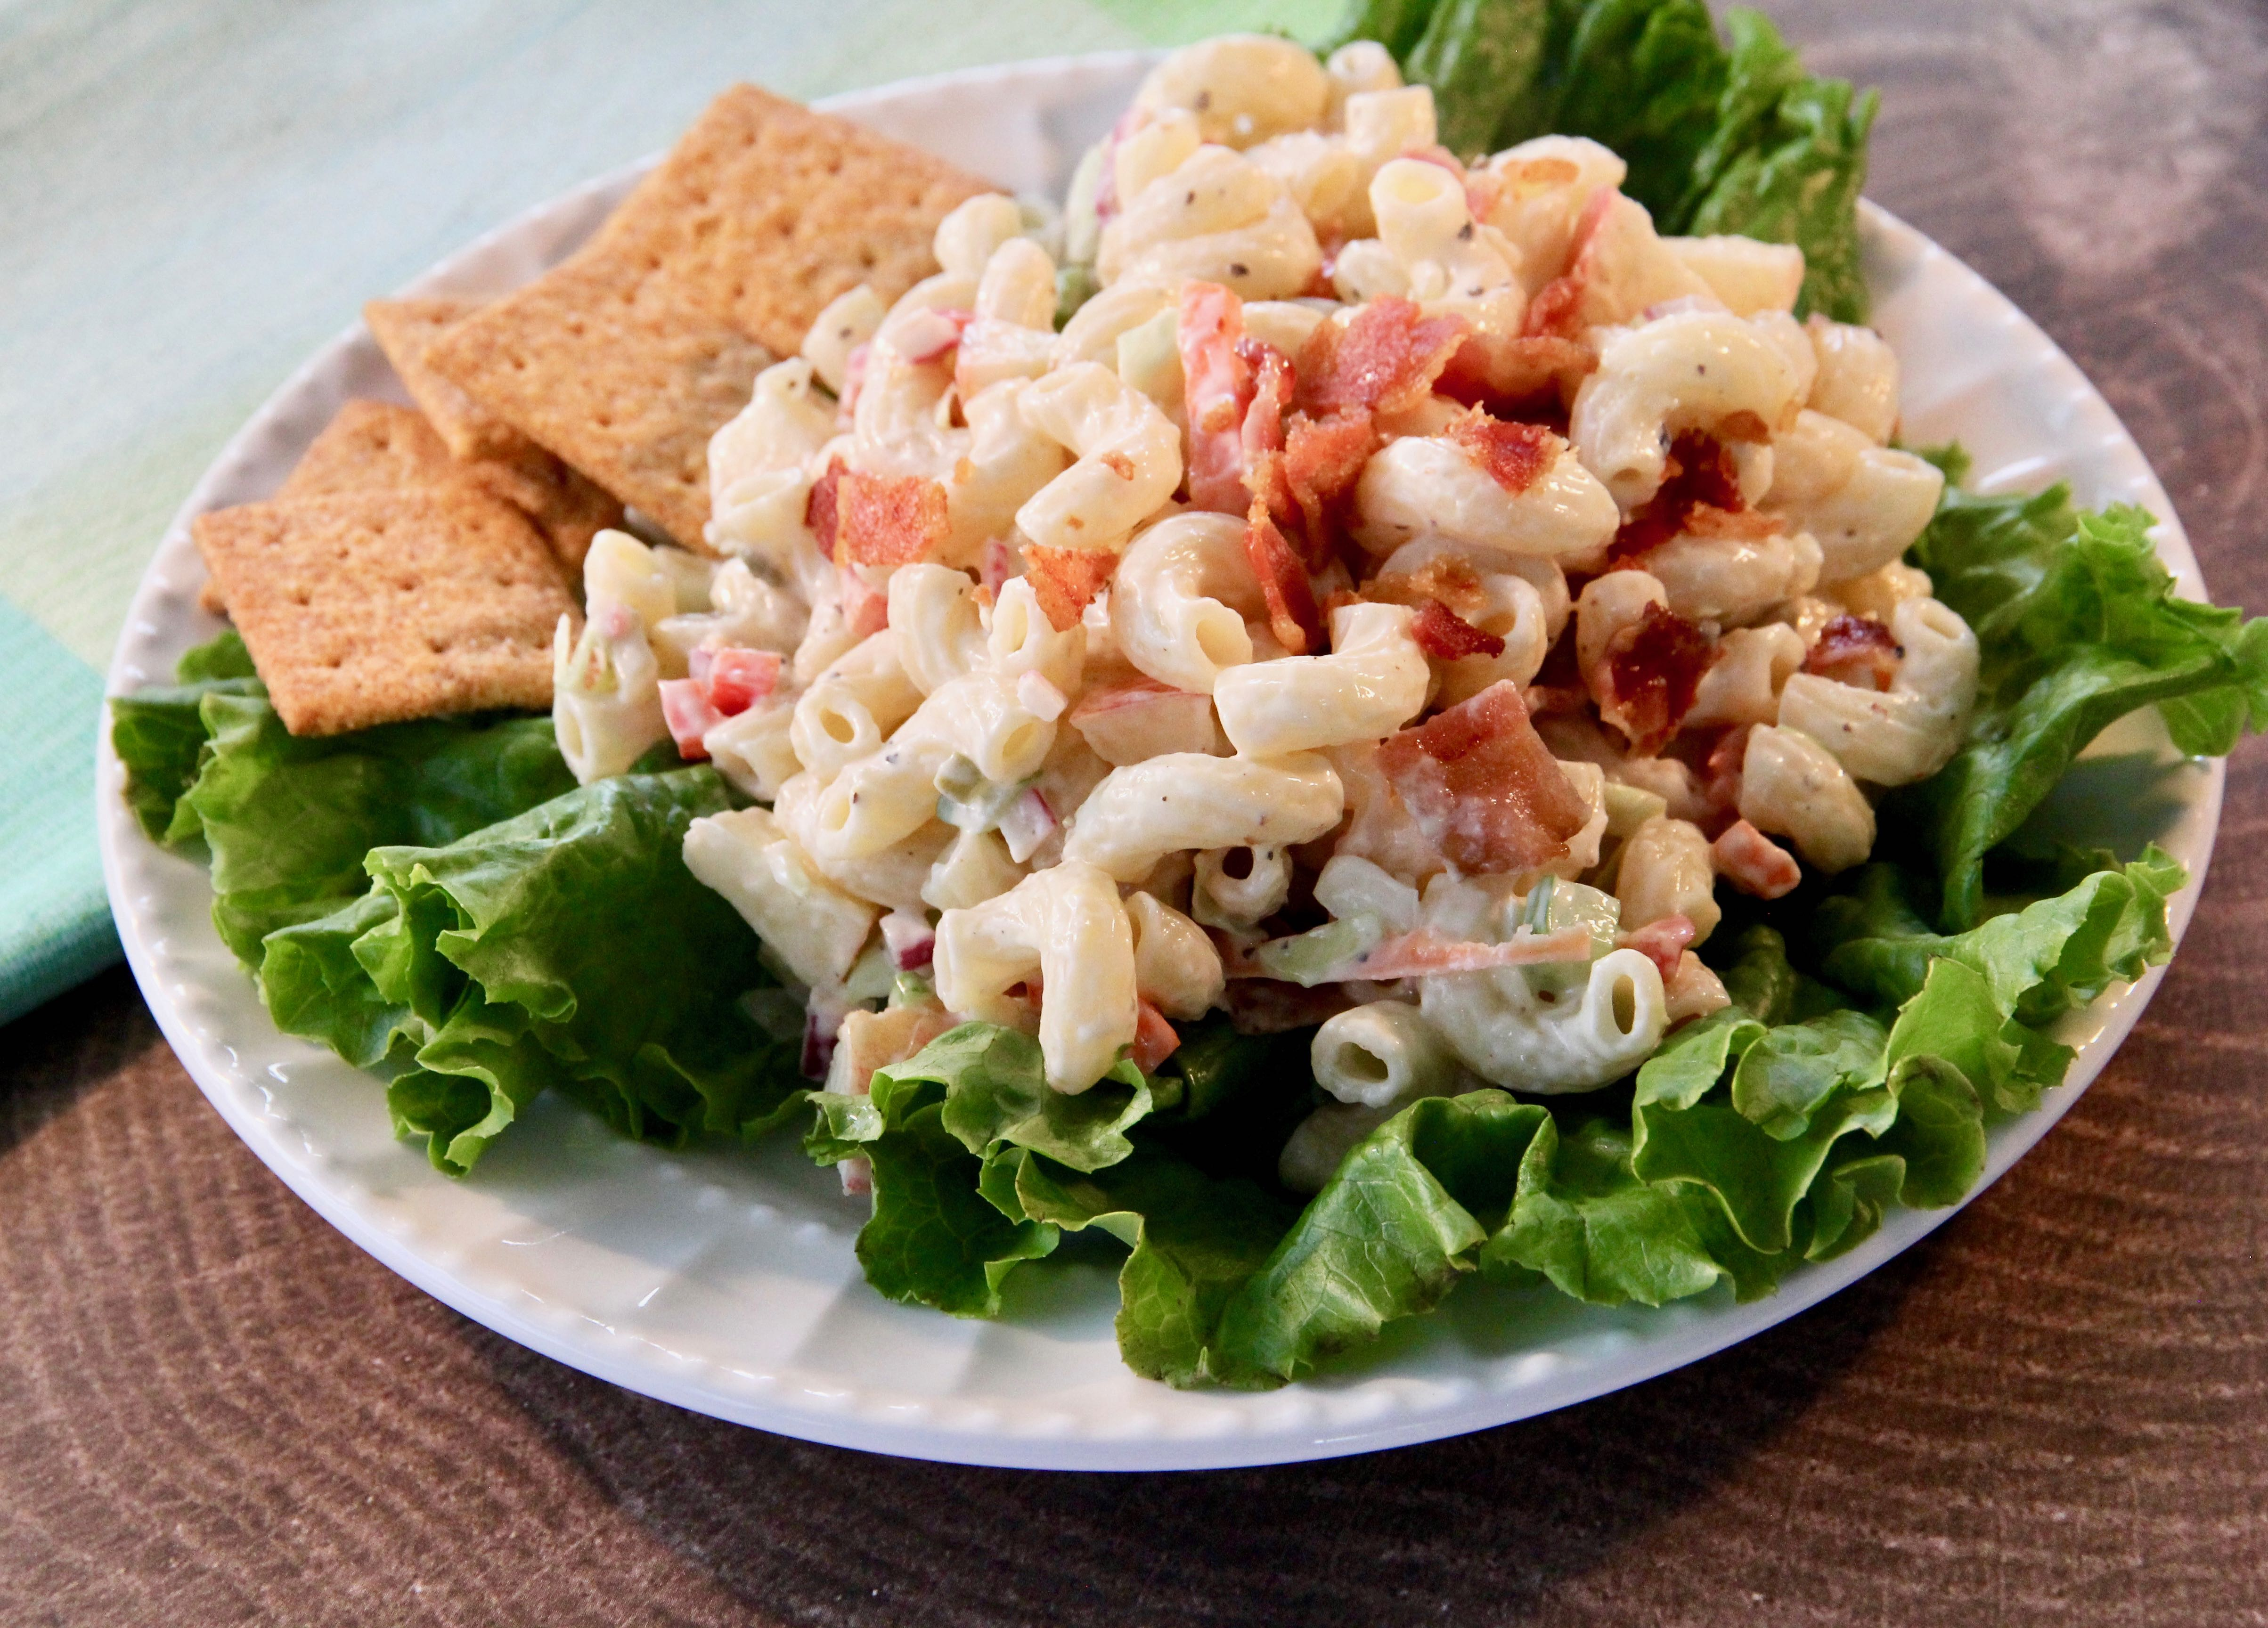 Macaroni Salad with Apples lutzflcat